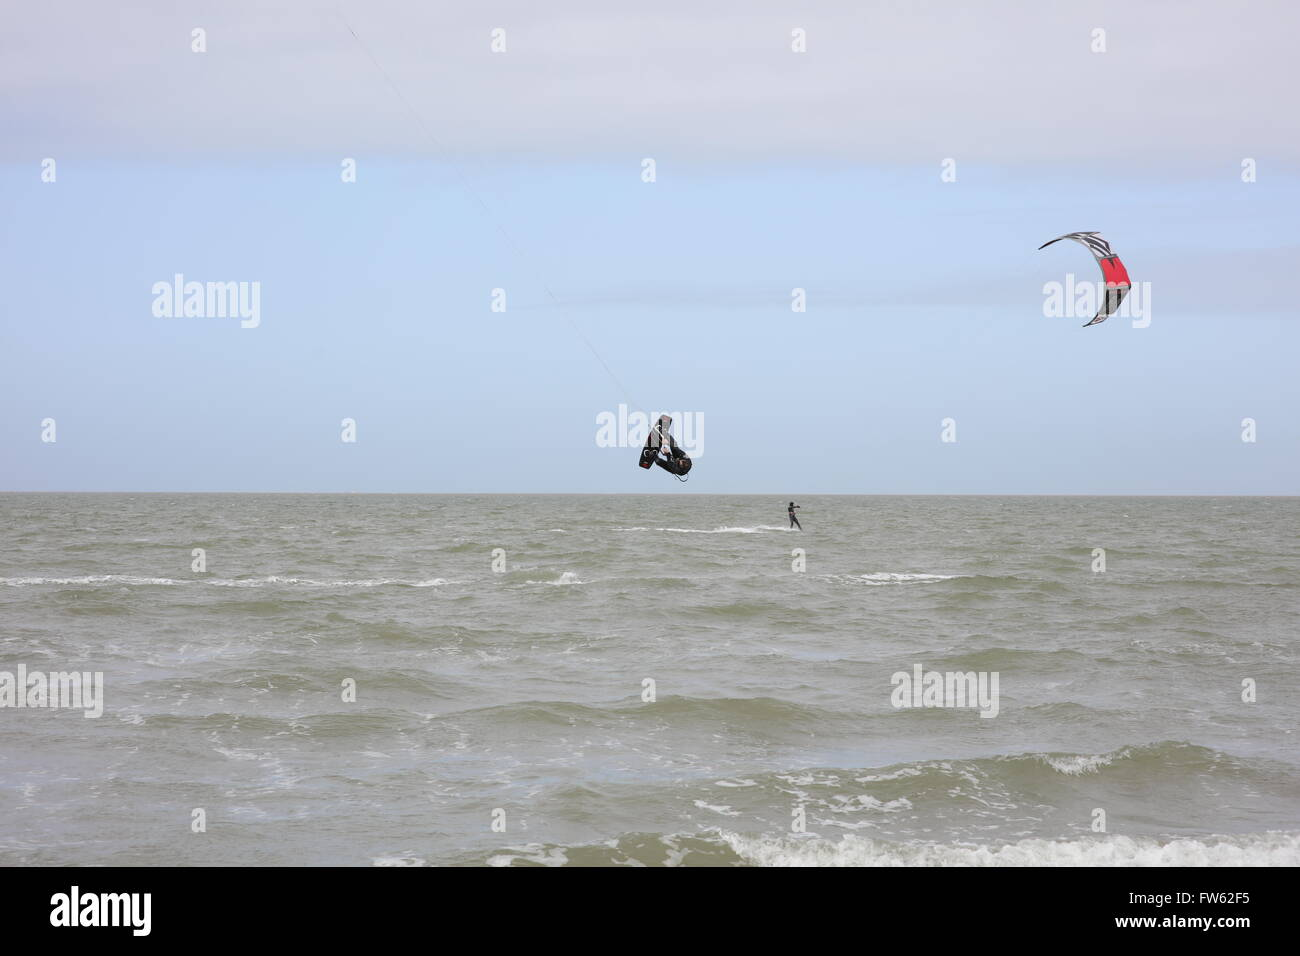 Kite Surfer(s) at Brouwersdam, 4323 Ellemeet, Netherlands Stock Photo